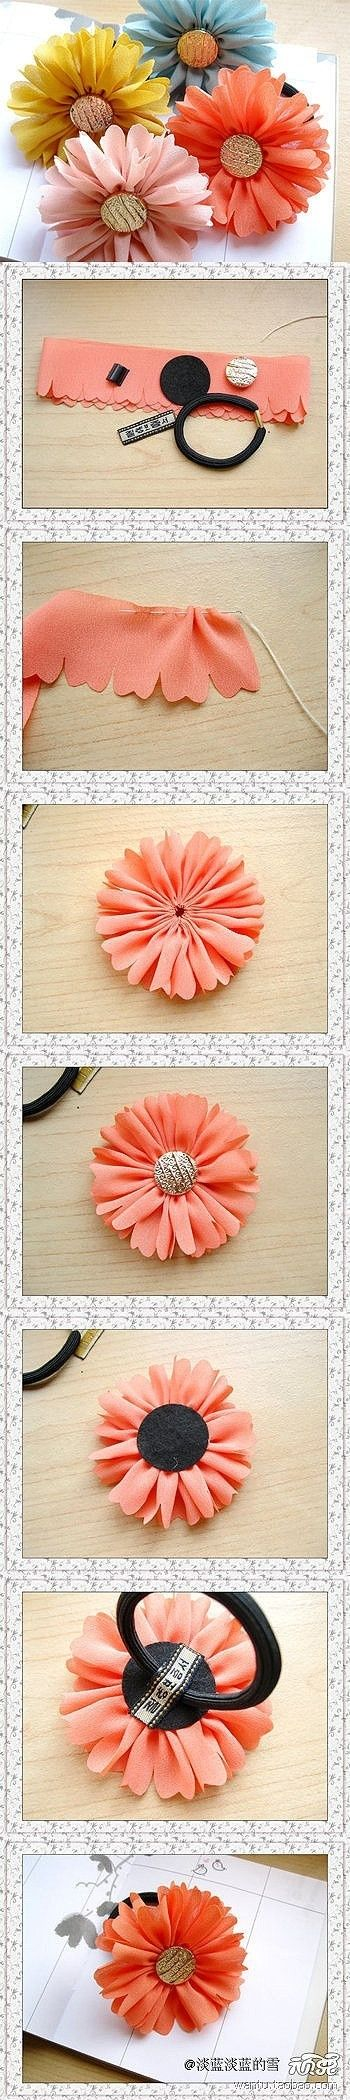 Make your own cute flowers! #diy